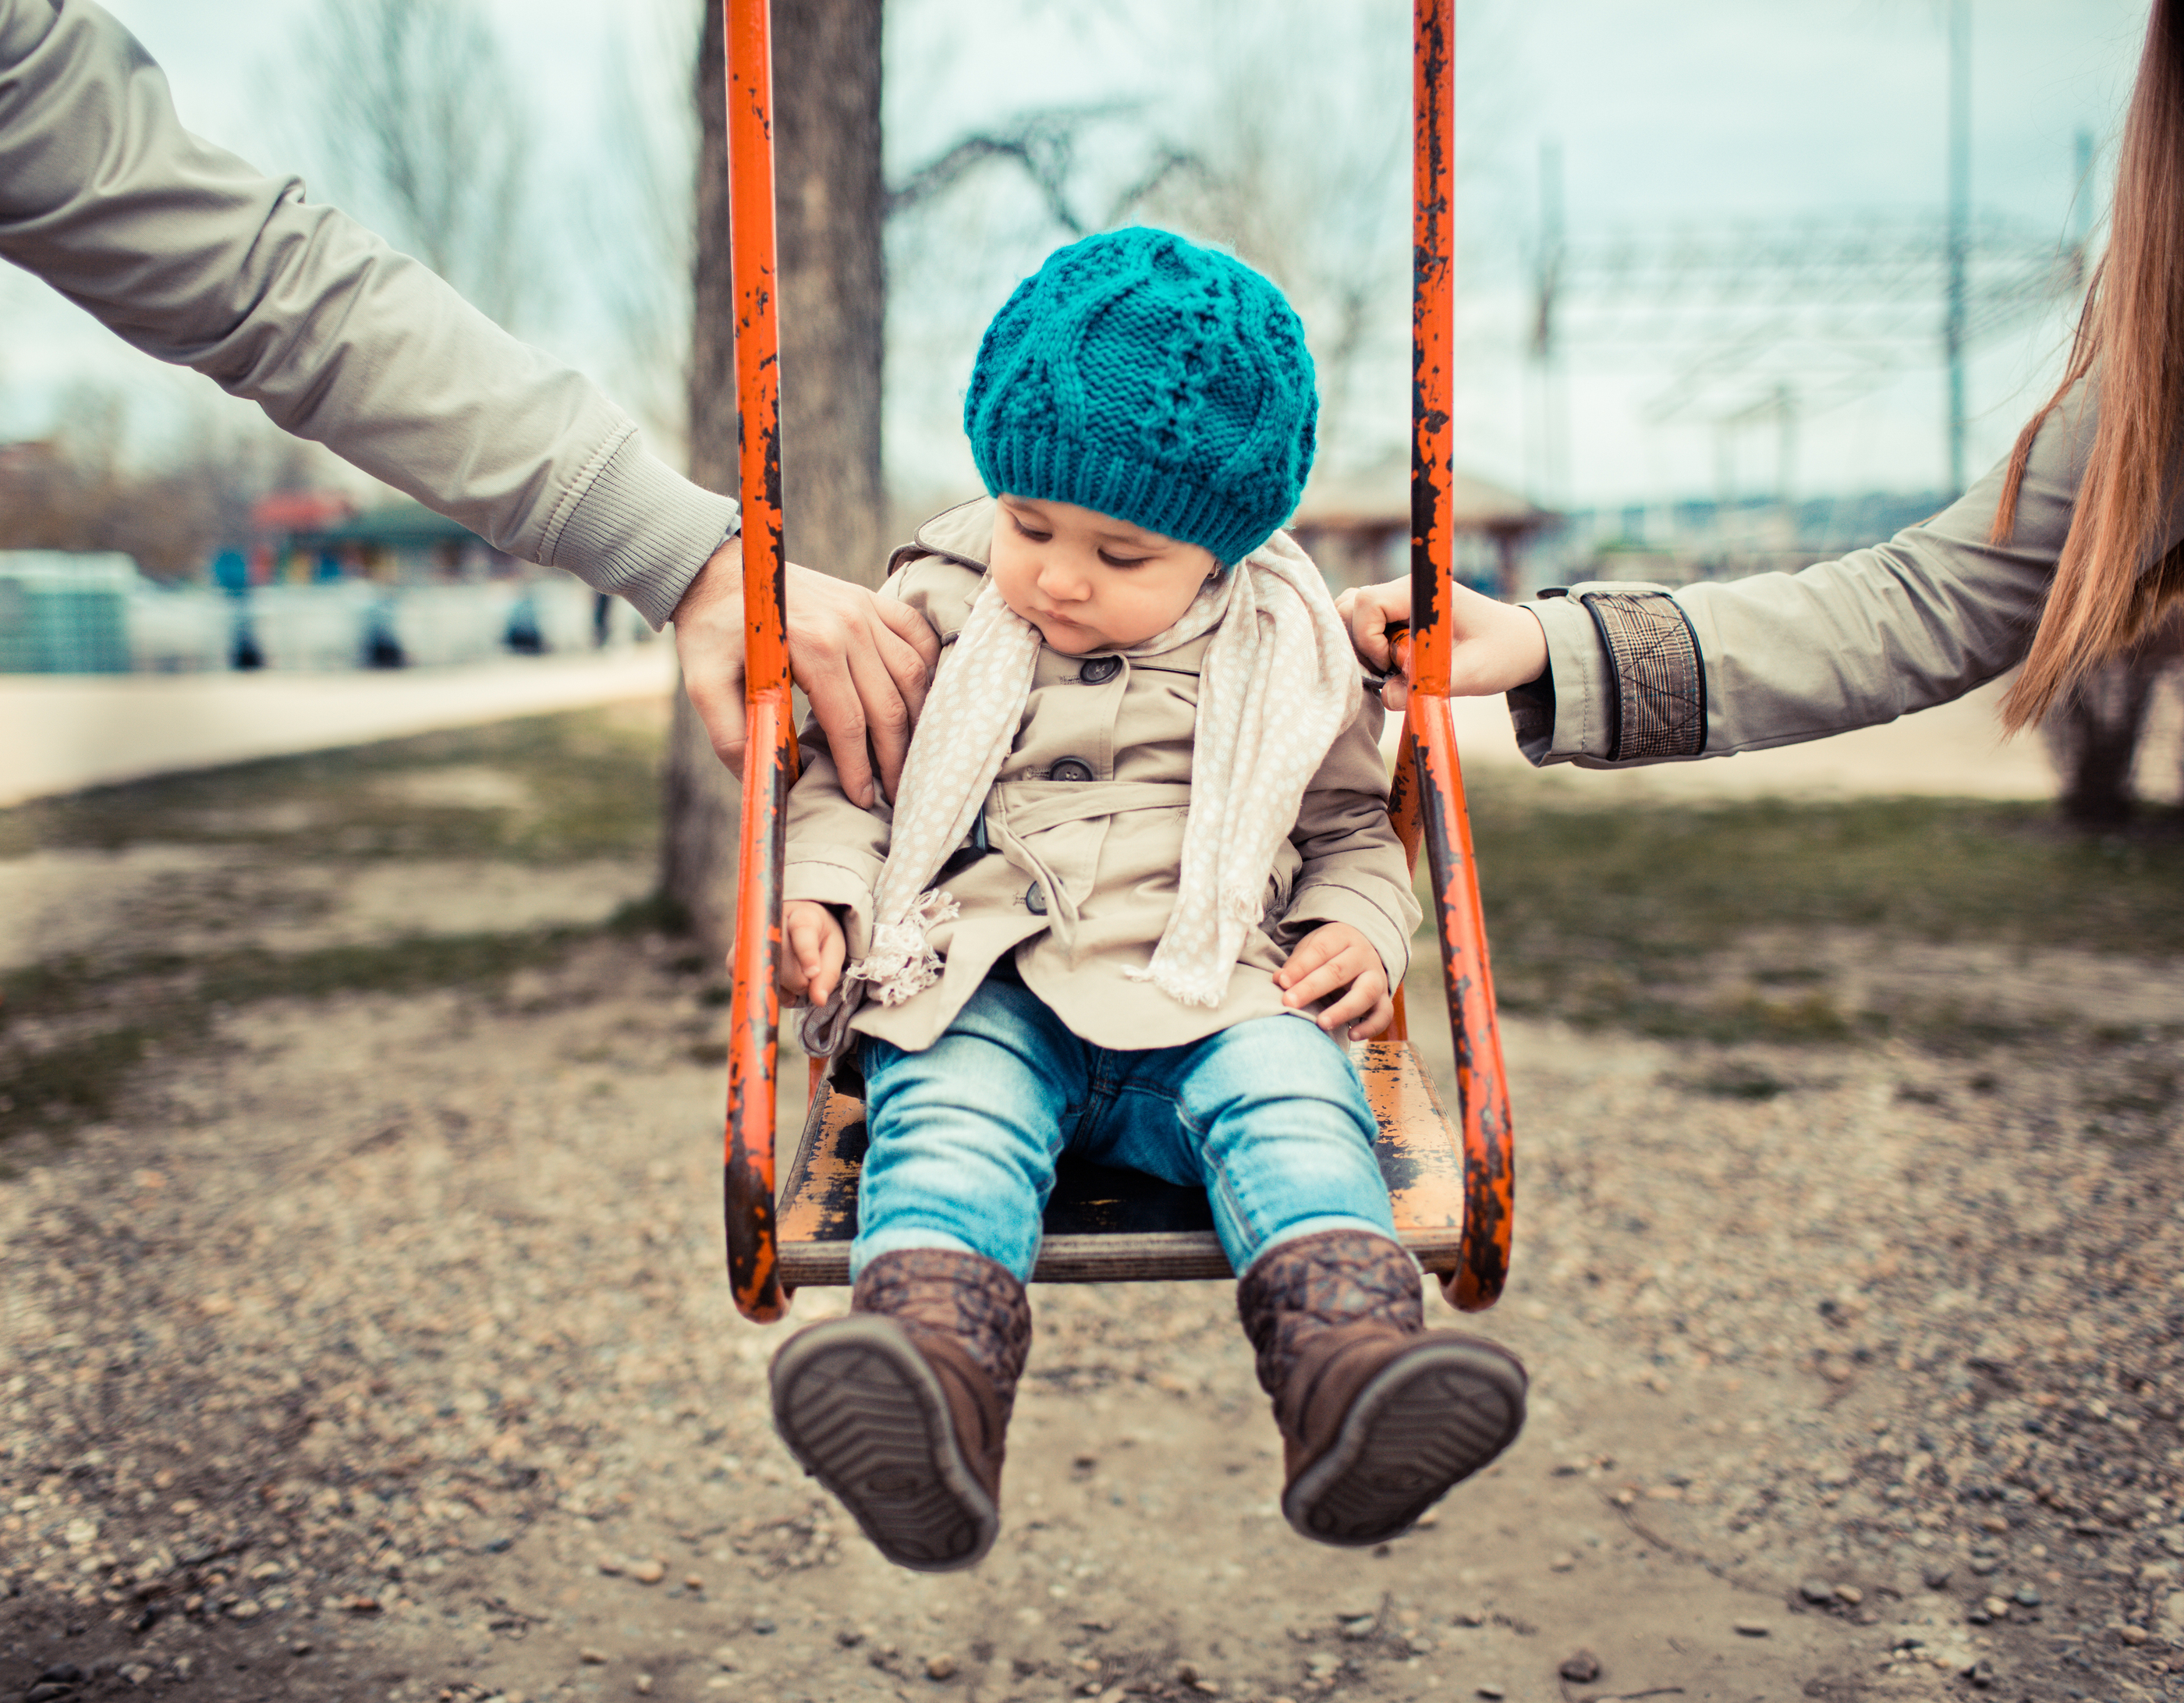 Child Custody, Parenting Orders and Everything you need to know about Child Matters